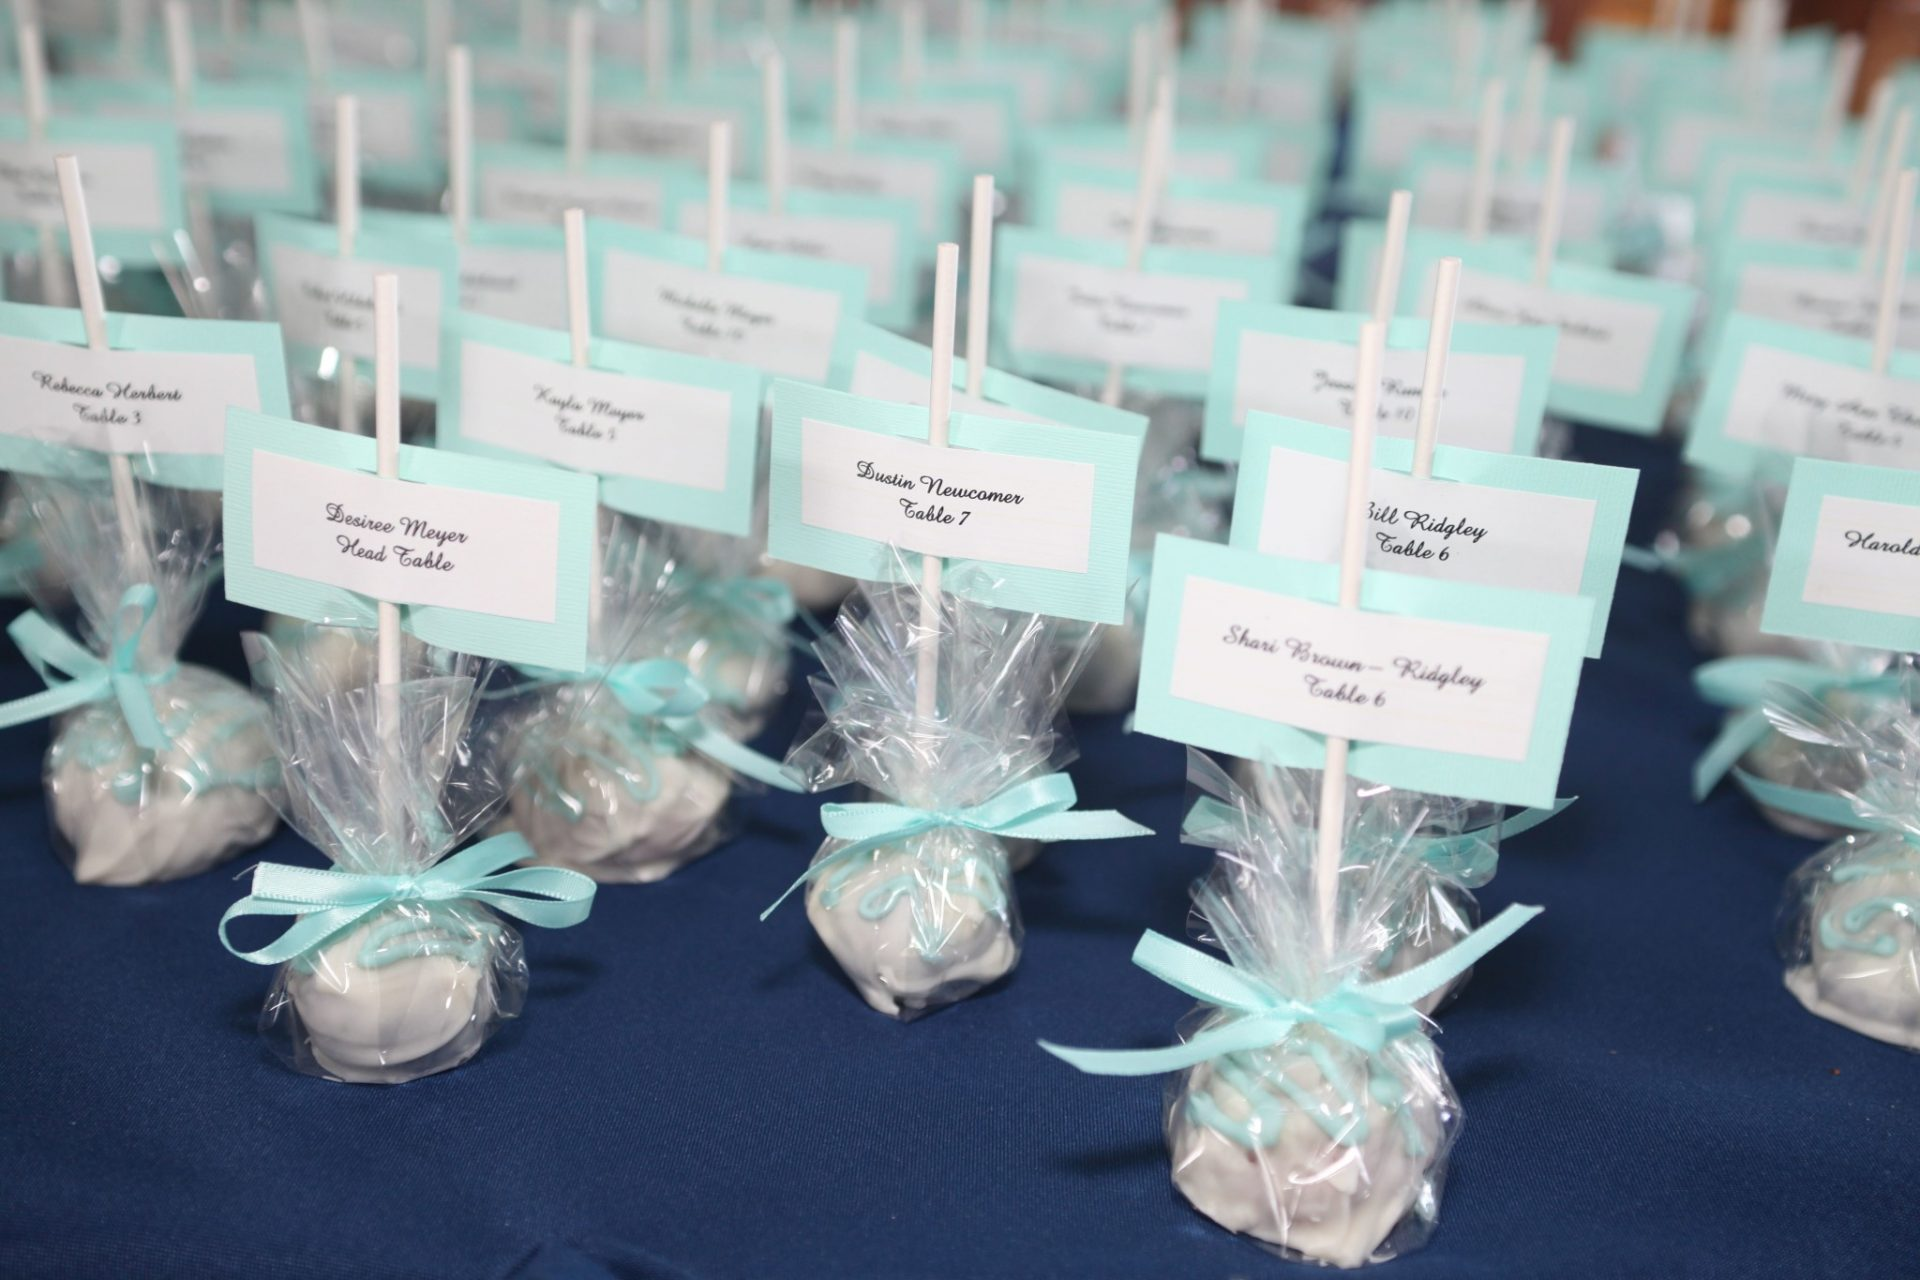 Cake pop party favors wrapped in plastic with teal bow also used as table assignments